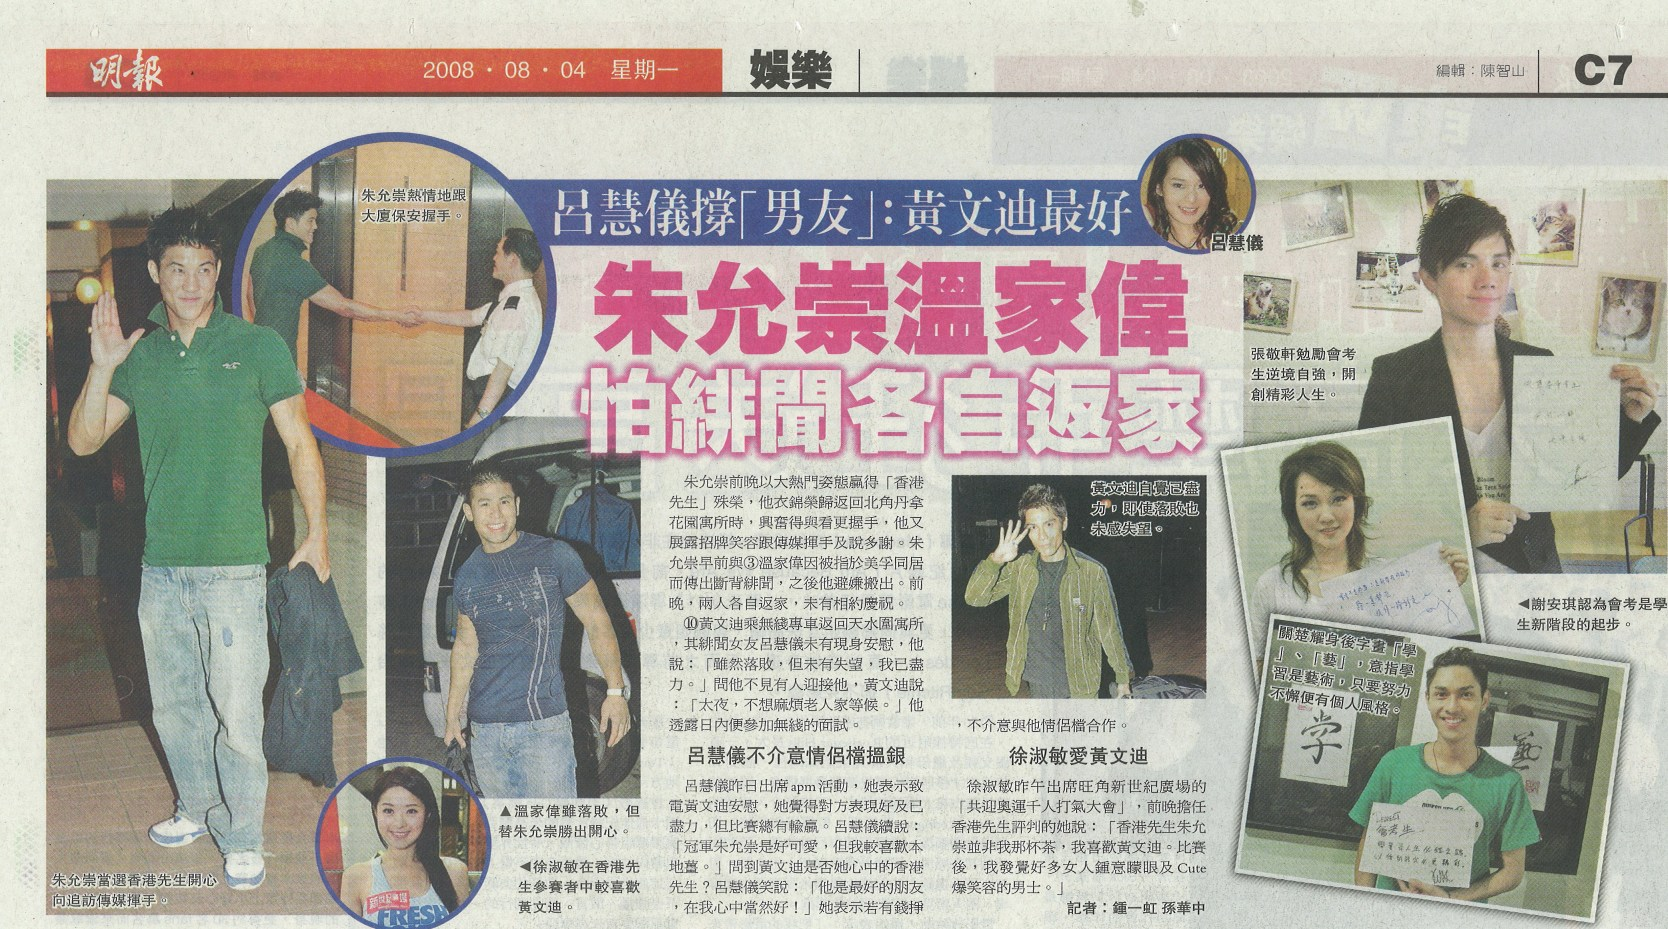 mingpao_c7_4aug08.jpg